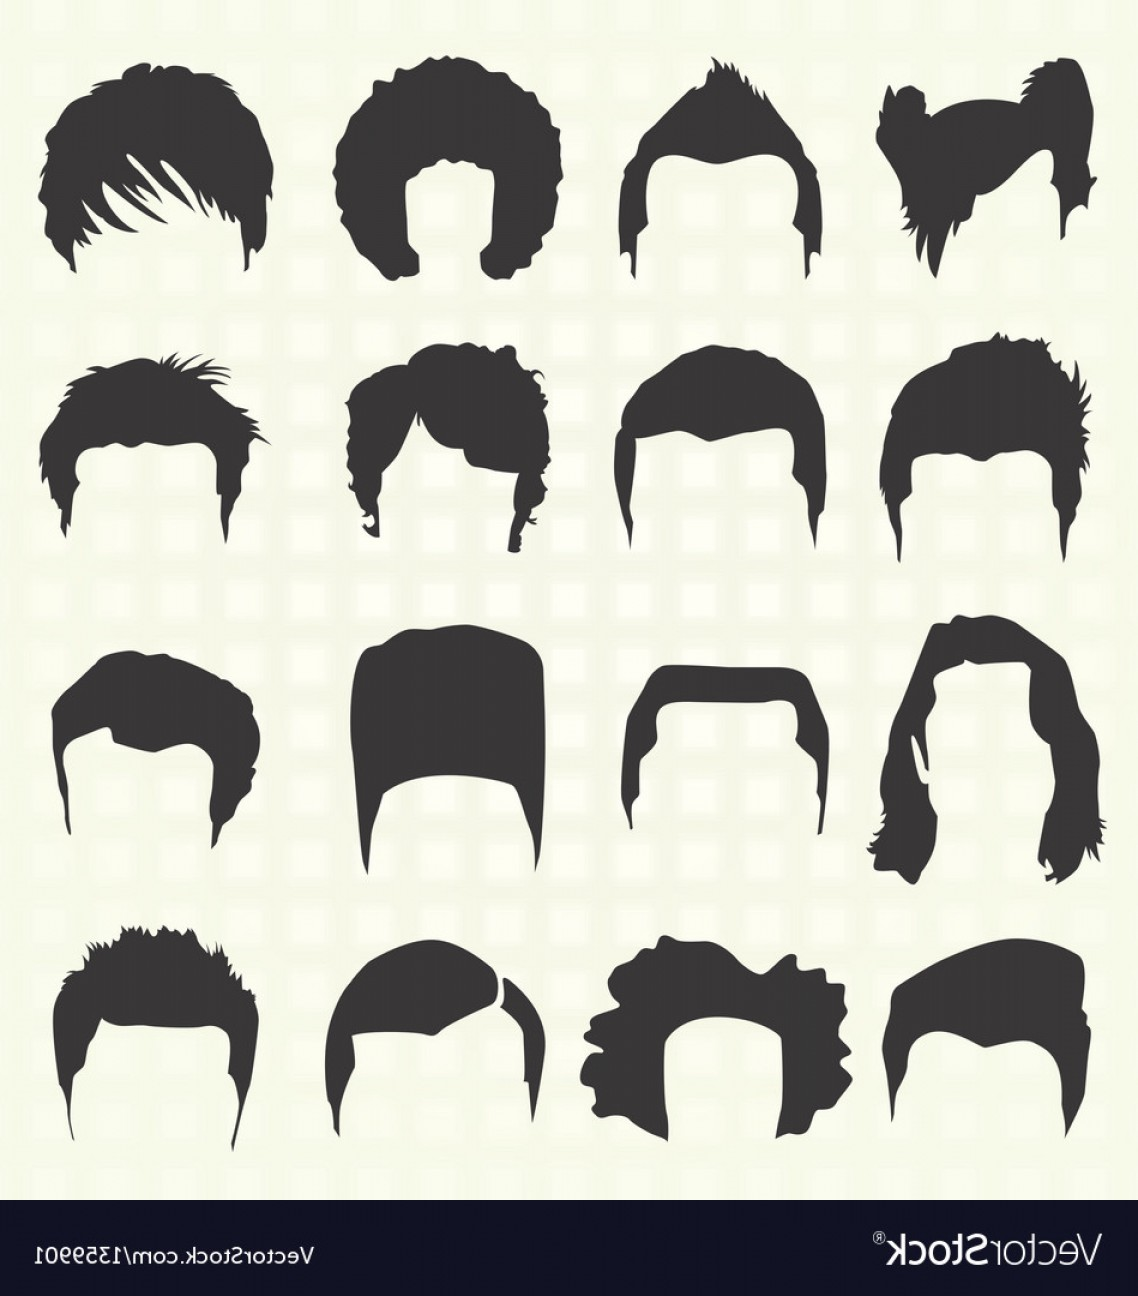 Short Men's Hair Vector: Retro Mens Hair Style Silhouettes Vector